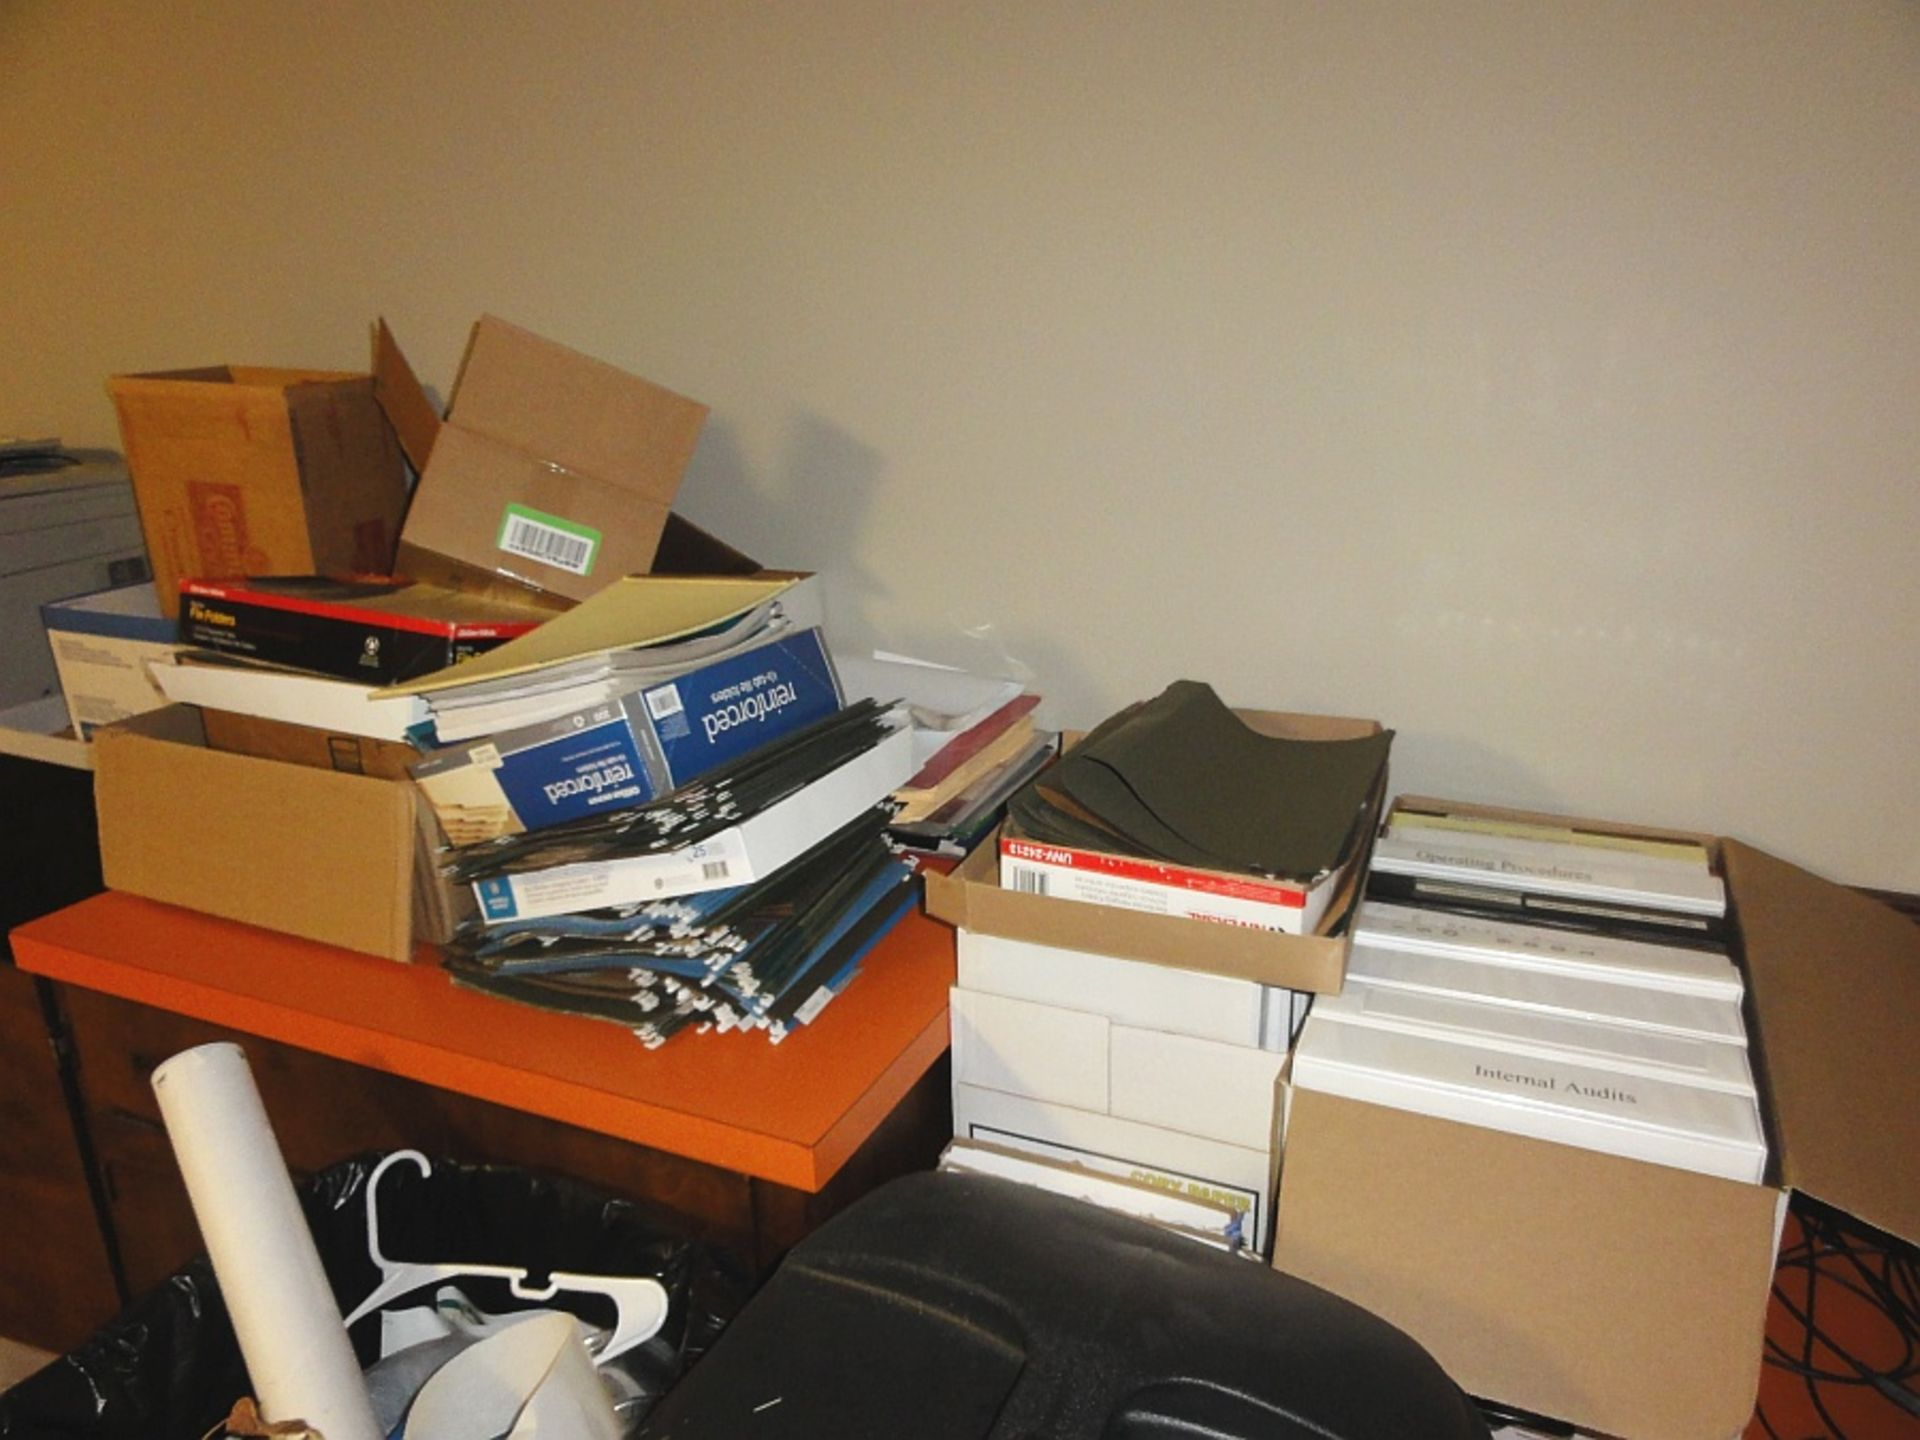 Lot 698 - Lot of Misc Office Supplies